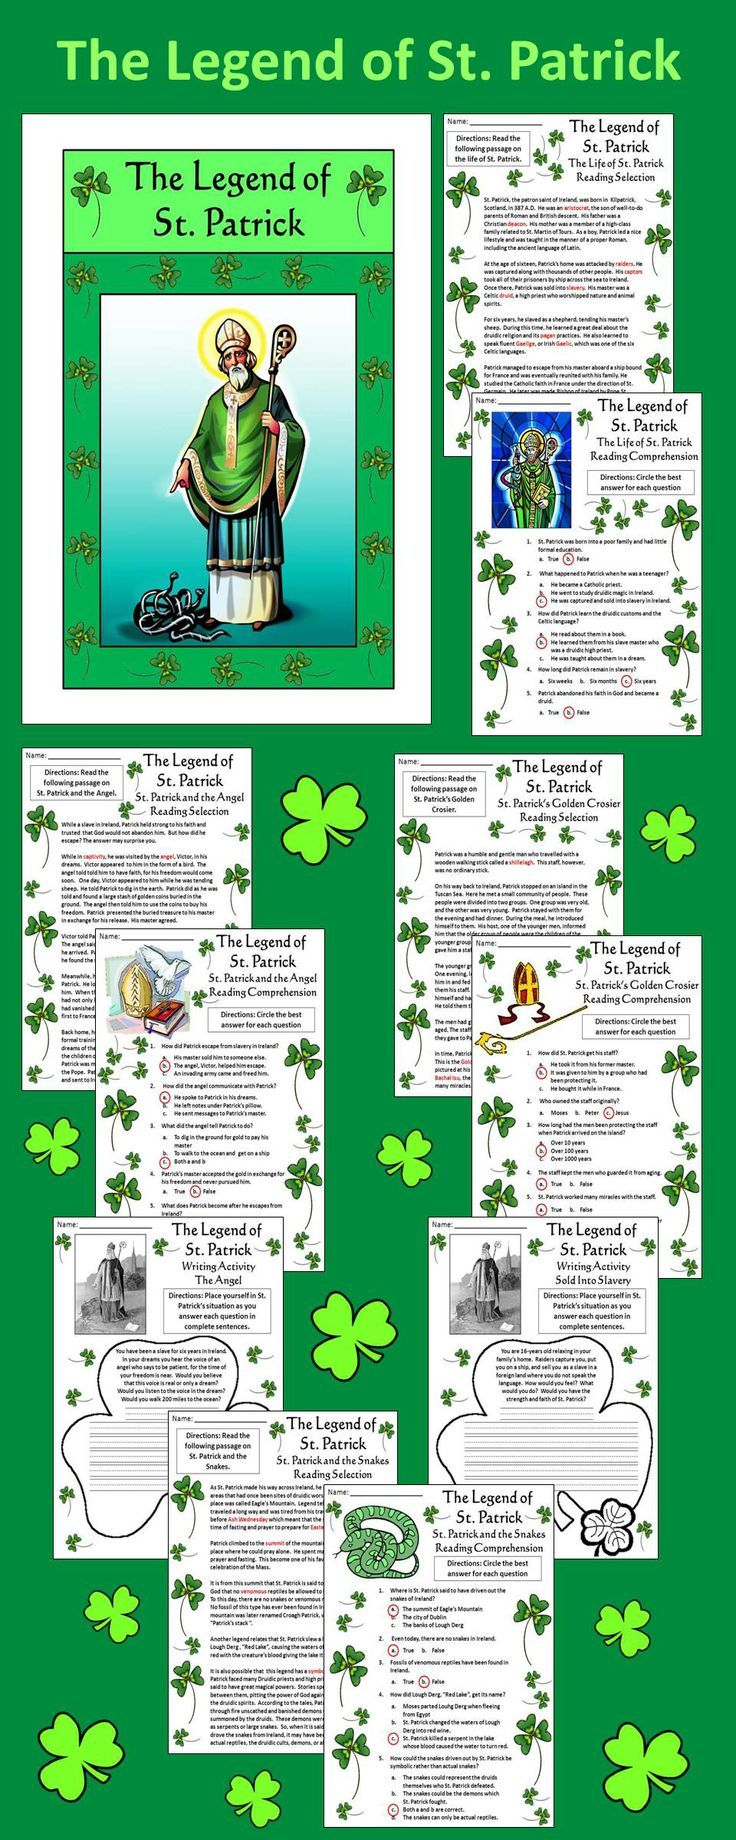 The Legend of St. Patrick: Colorful St. Patrick's Day activity packet detailing the extraordinary events and works of St. Patrick, Bishop of Ireland.  Contents include: * Reading Selections & Quizzes -Life of St. Patrick, St. Patrick and the Angel, The Golden Crosier of St. Patrick,  St. Patrick and the Snakes * Writing Activities * Coloring sheets * Answer keys  #St #Patrick's #Day #Reading #History #Social #Studies #Activities #Worksheets #AnnDickerson #Religion